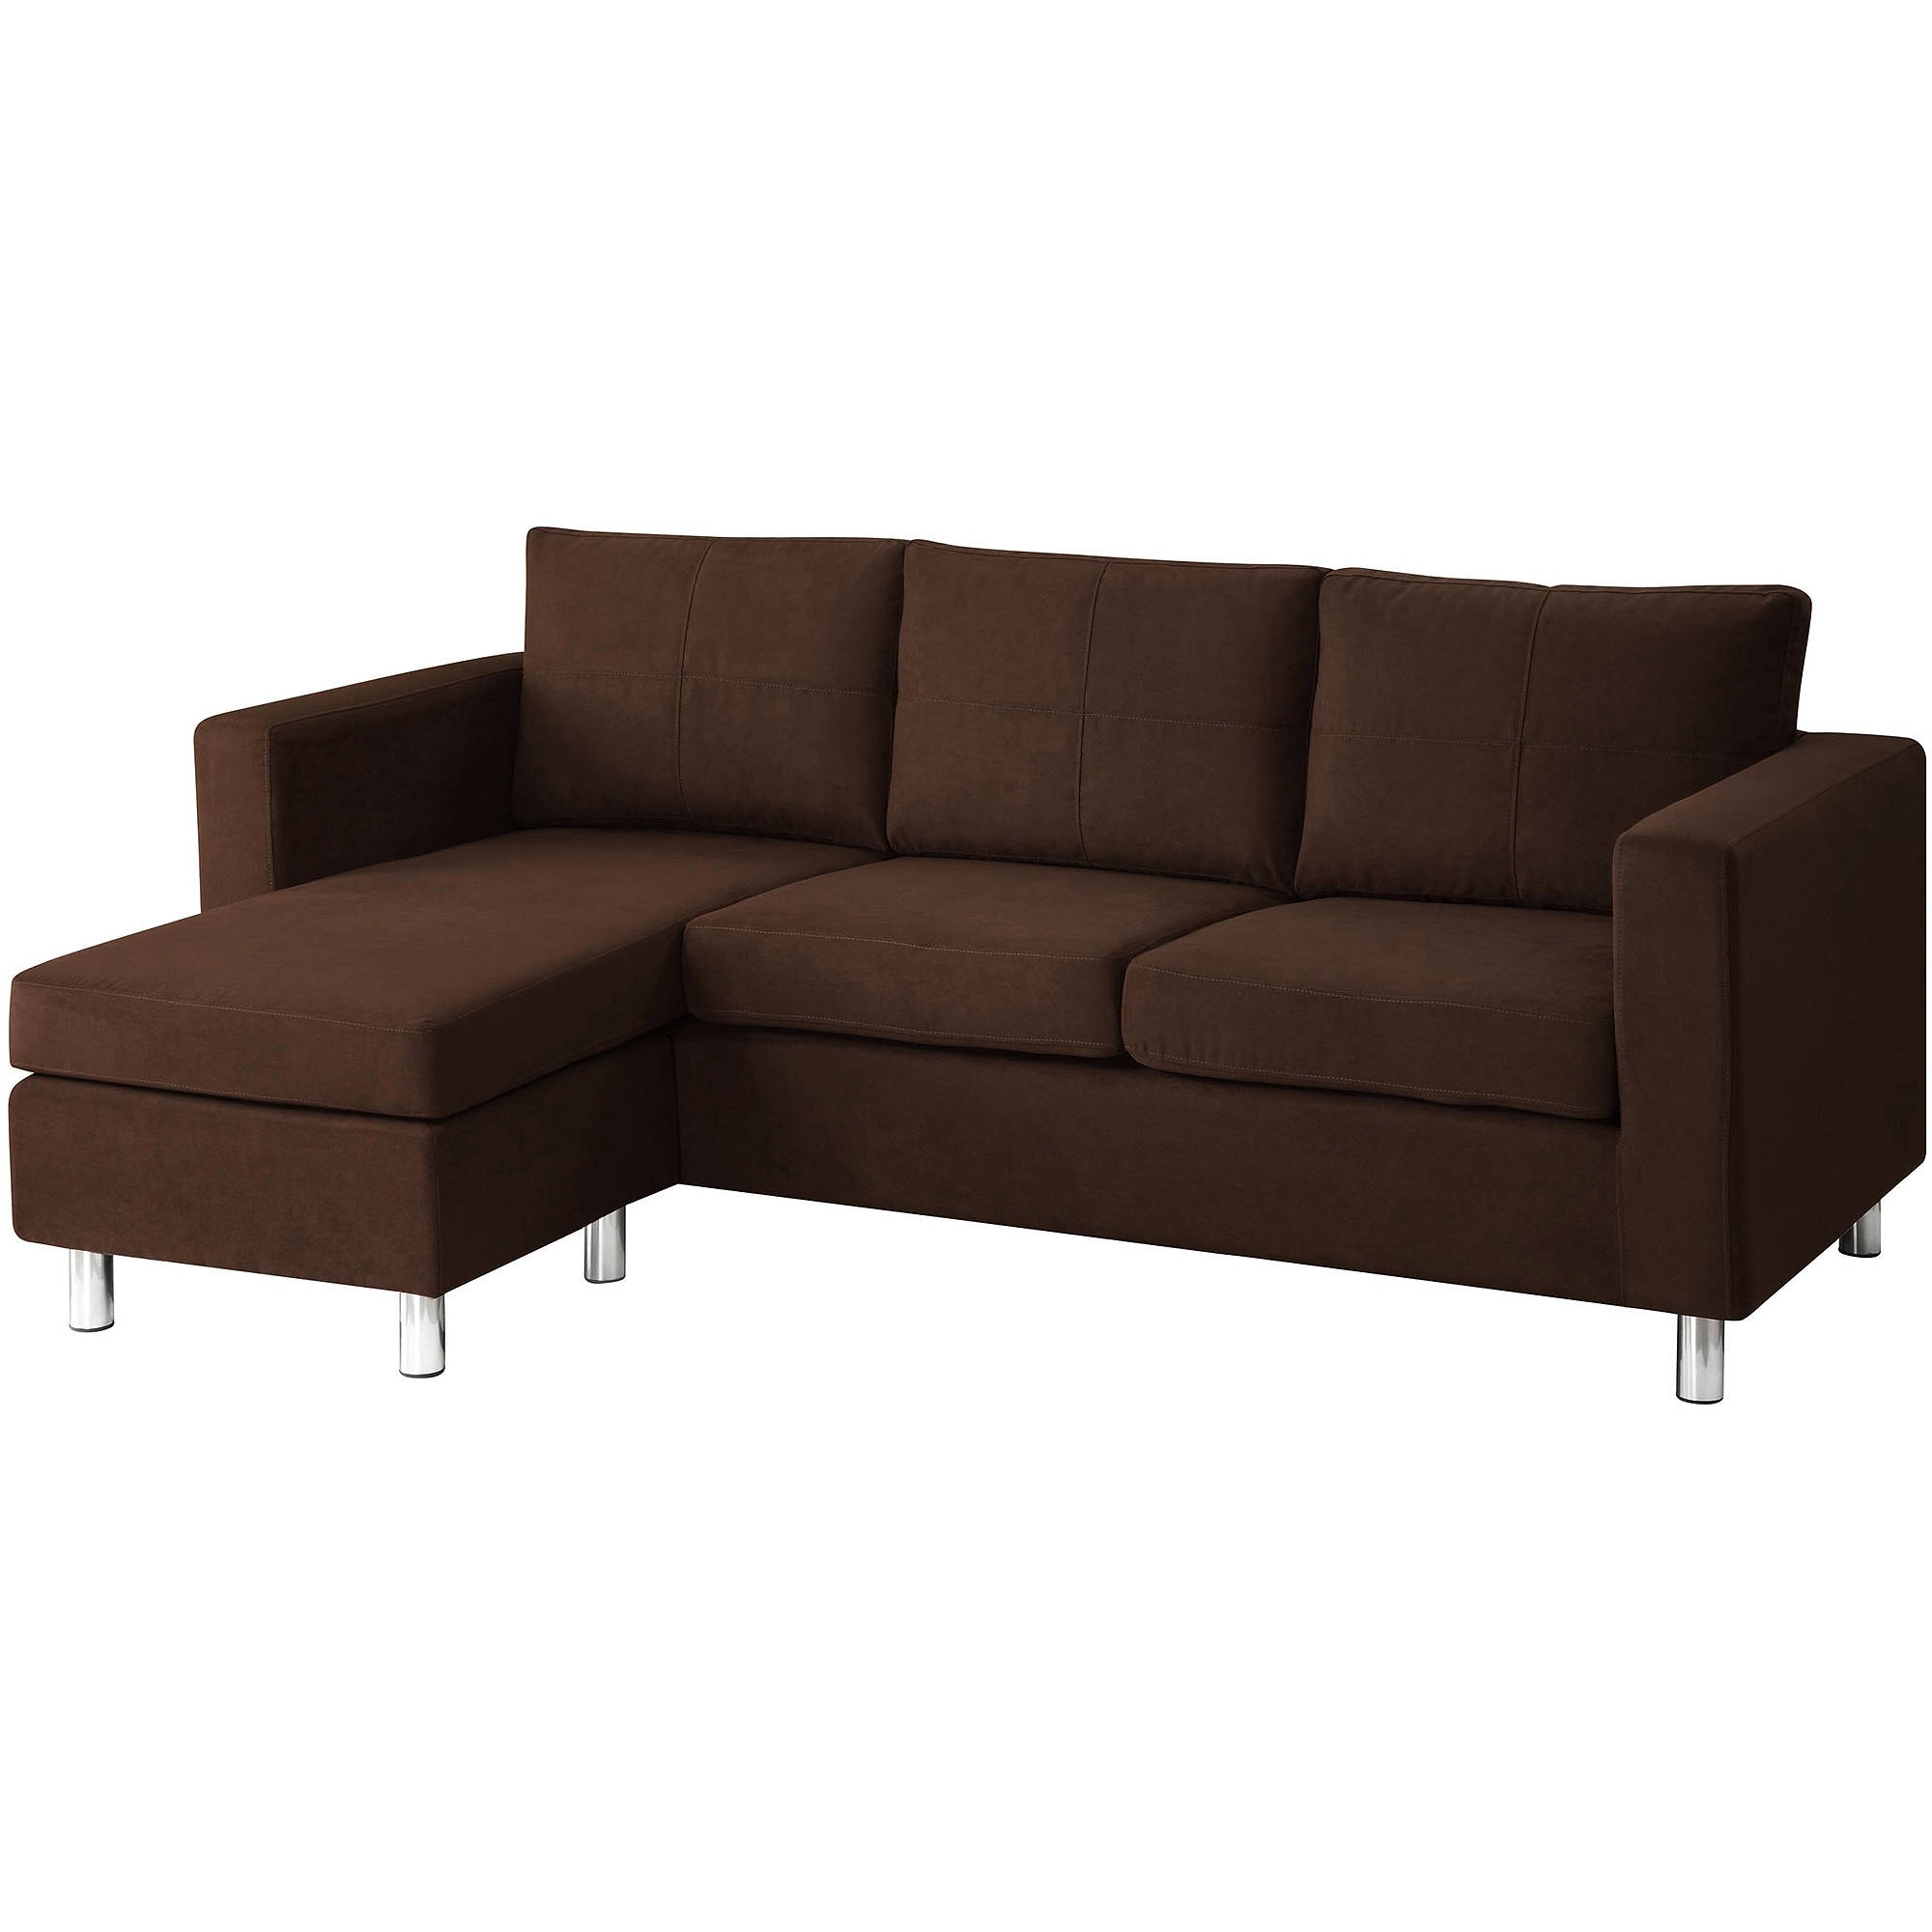 Sofas: Futon Beds Walmart | Walmart Sofa | Couch Walmart Inside Sectional Sofas At Walmart (View 14 of 15)